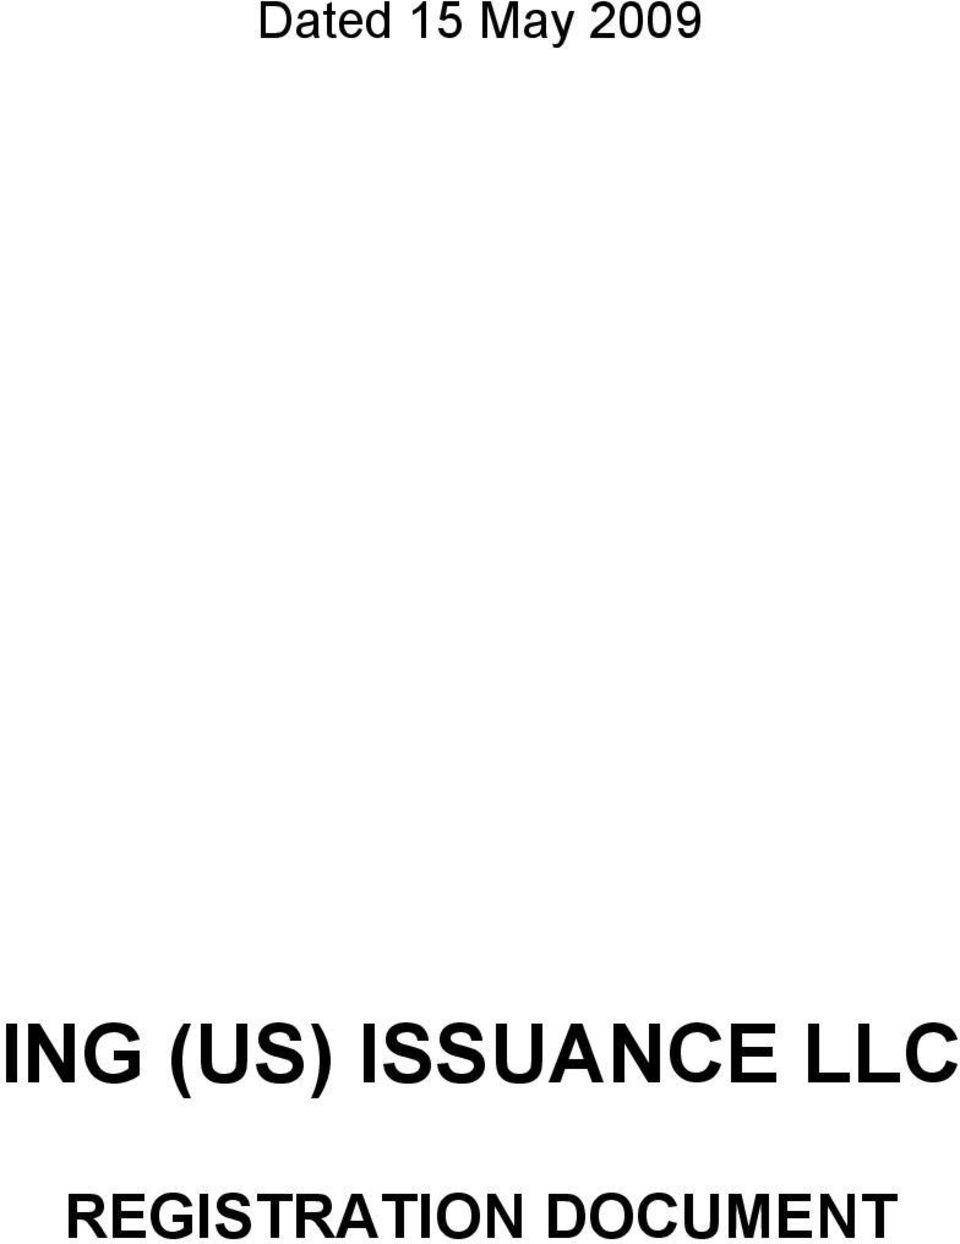 ISSUANCE LLC